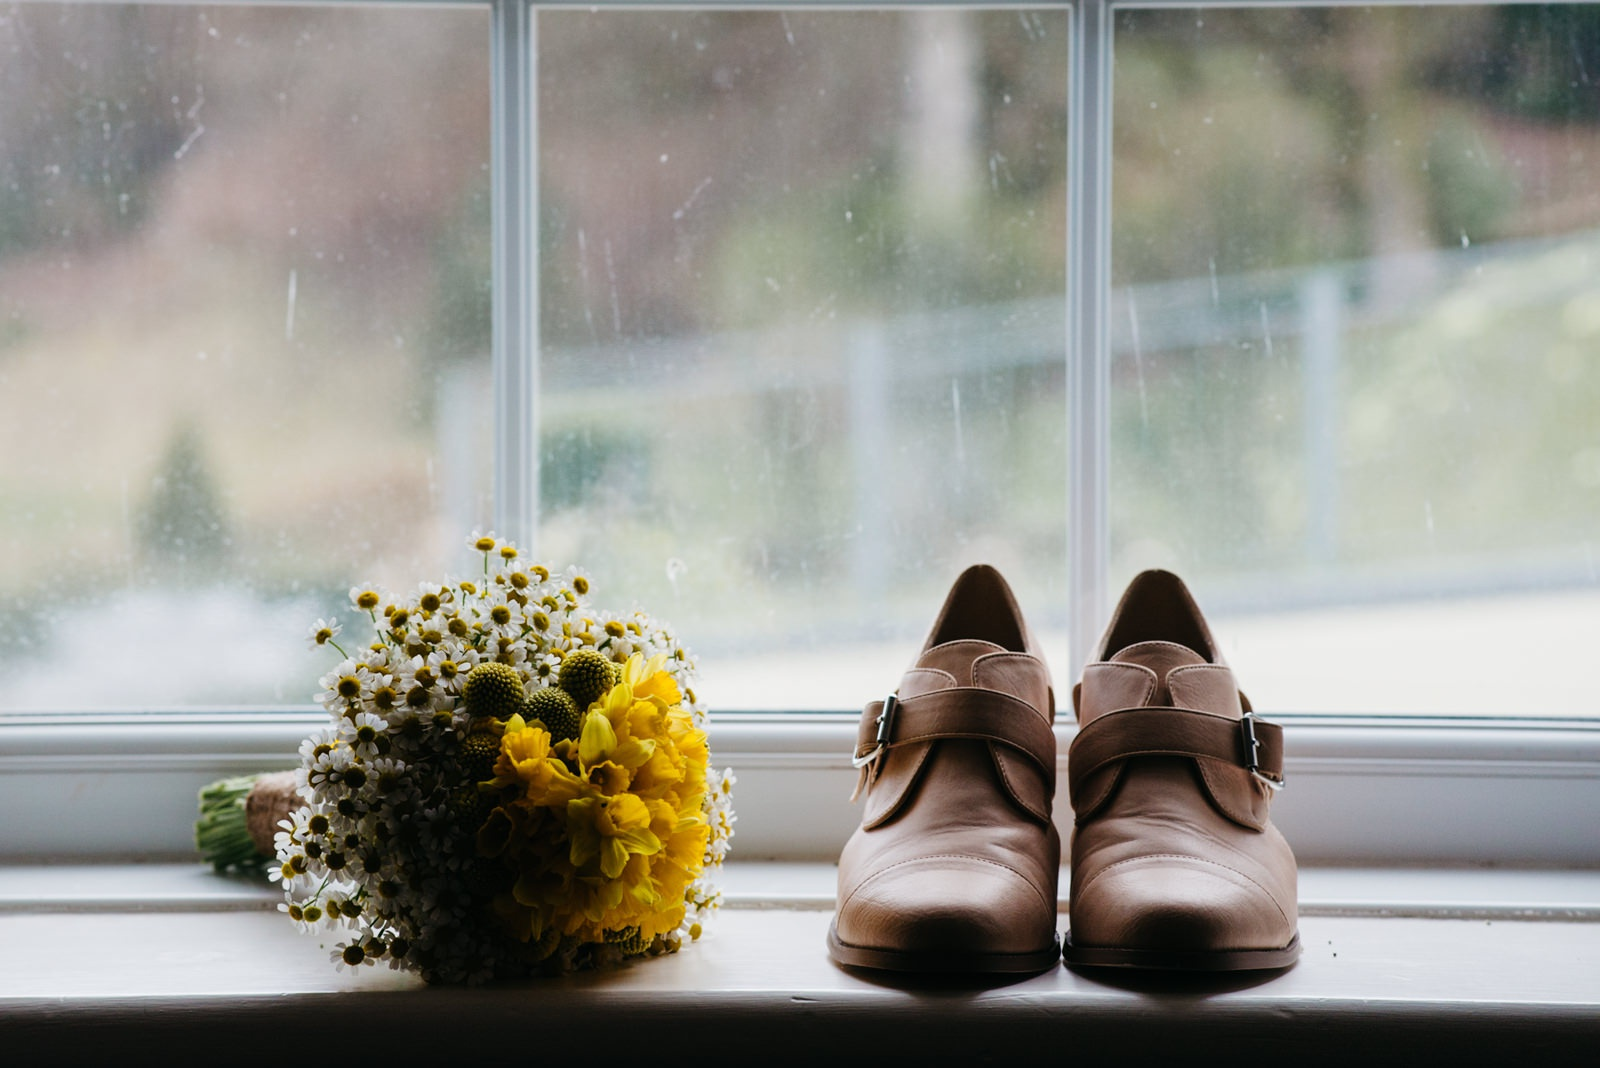 Brides wedding shoes and & bouquet on window ledge at New House Hotel in Lisvane